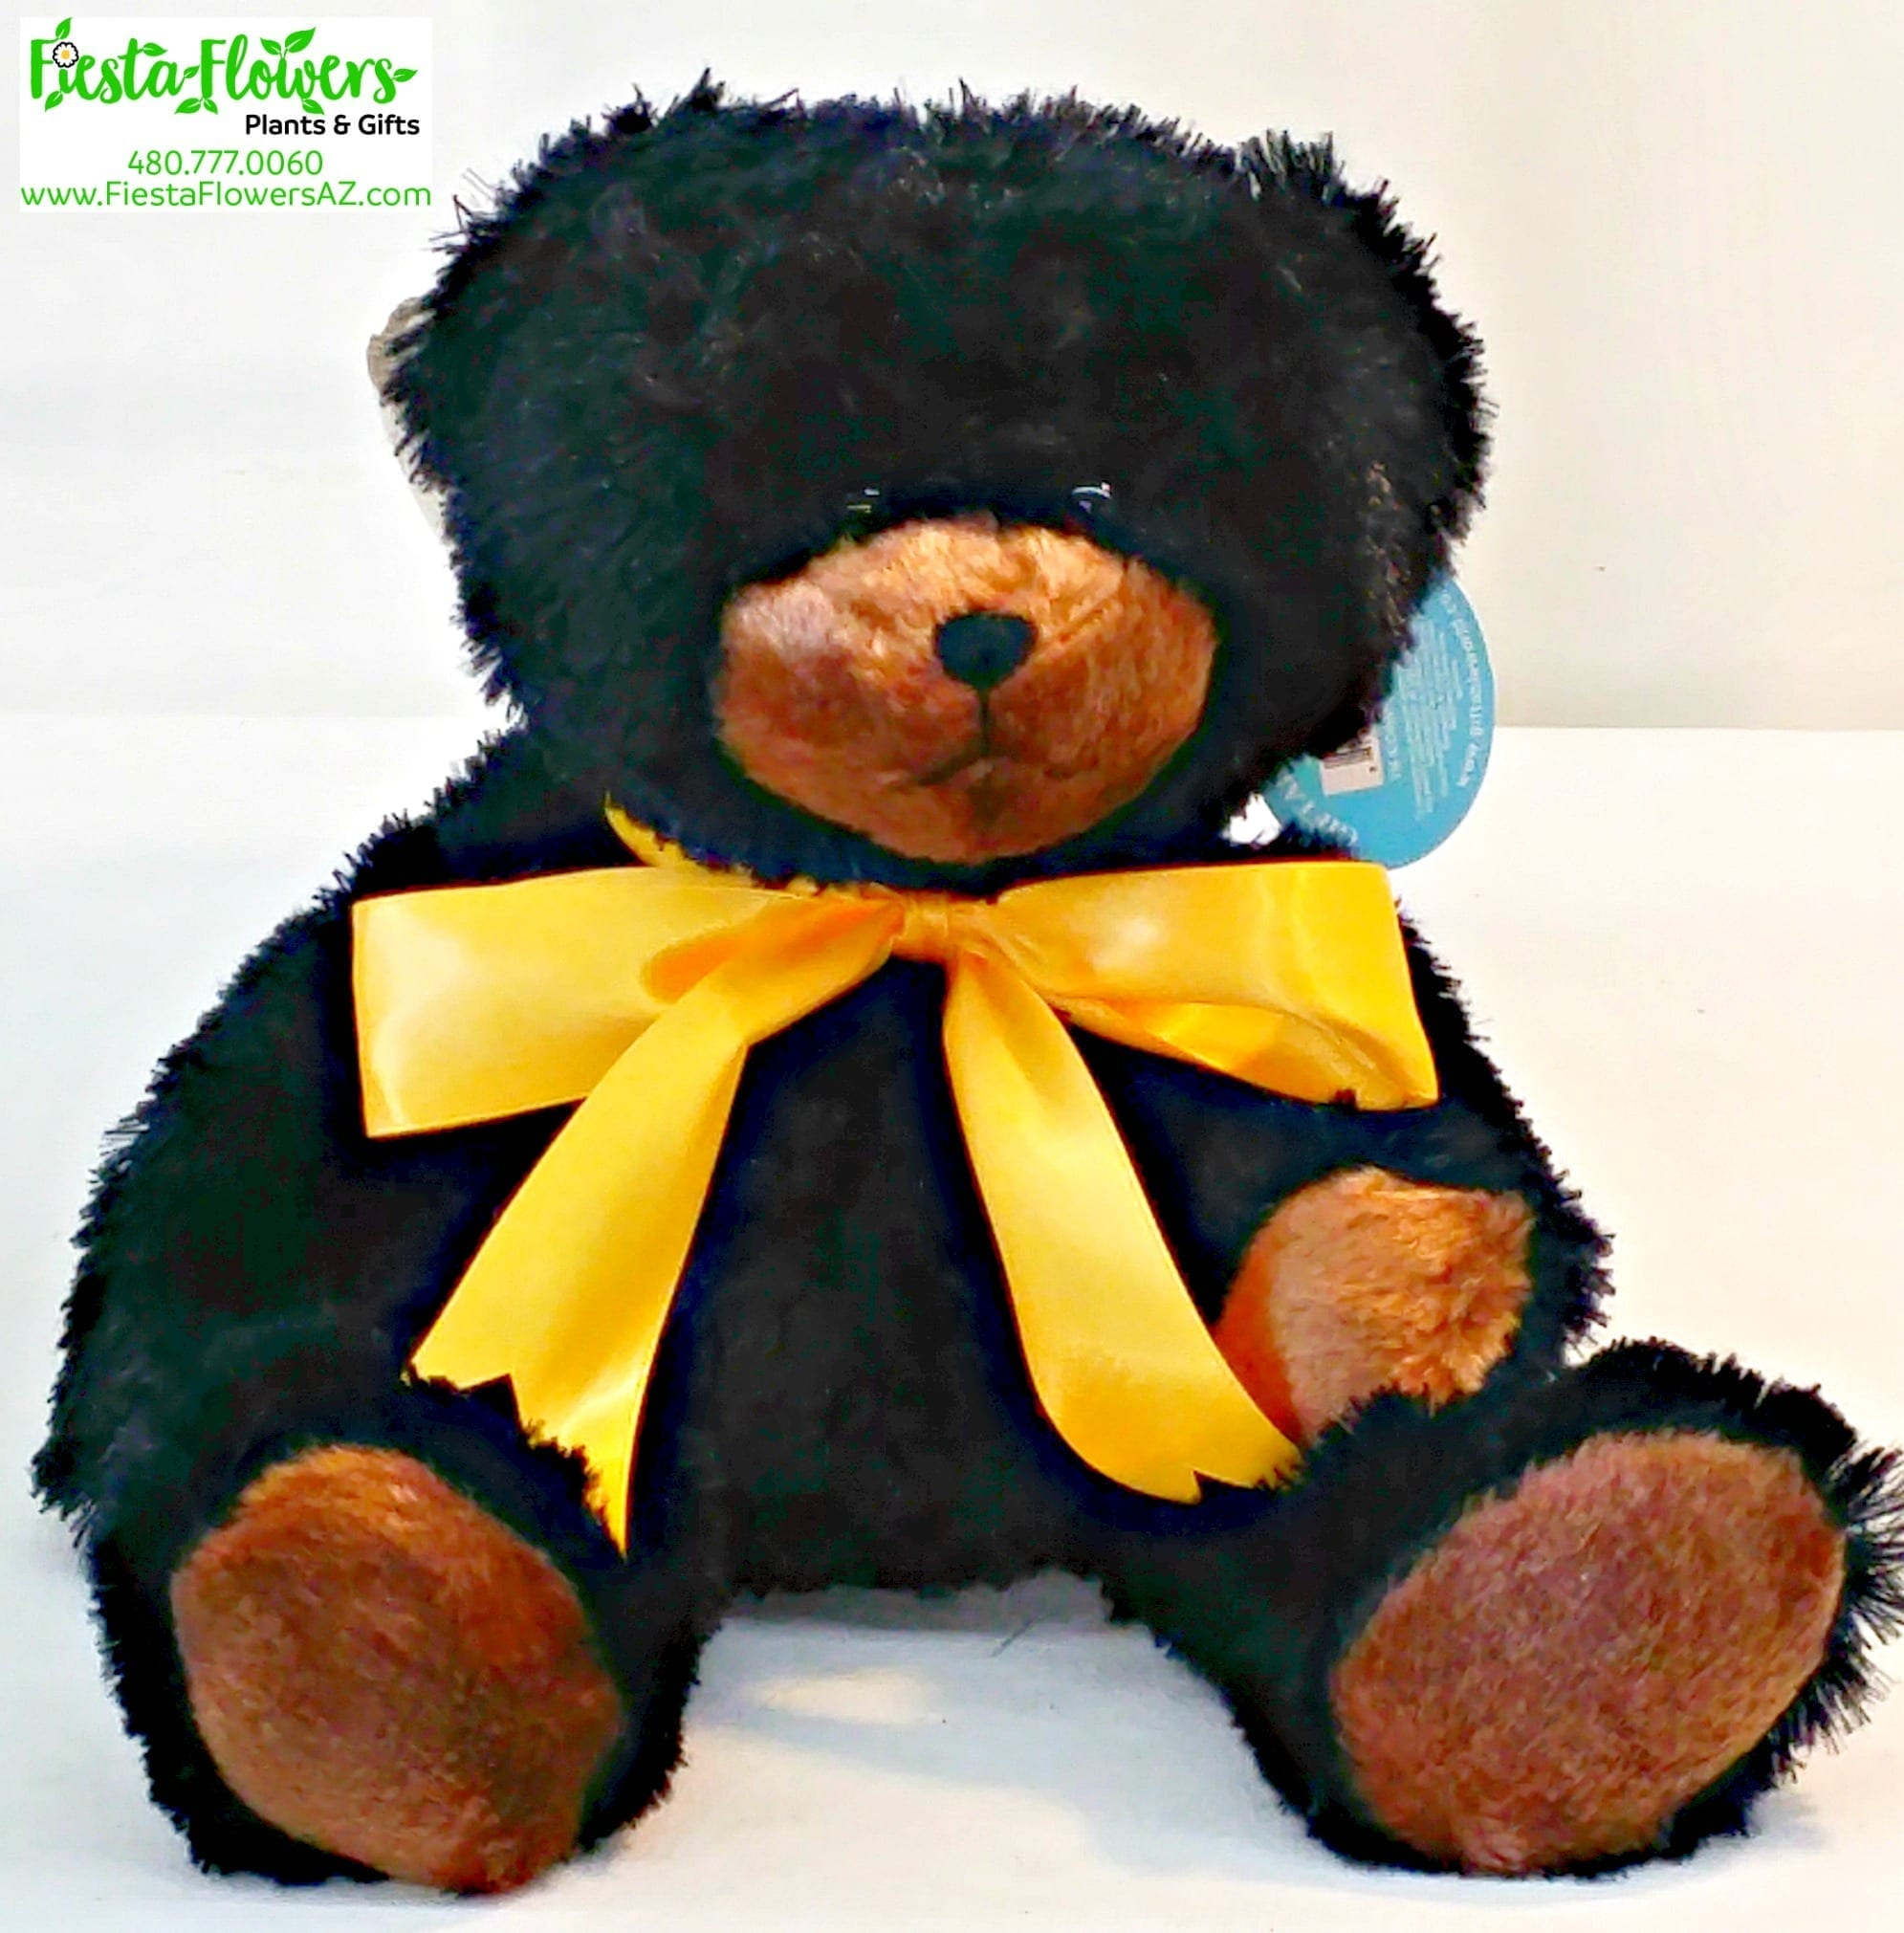 We Offer A Large Selection Of Unique Super Soft Plush Stuffed